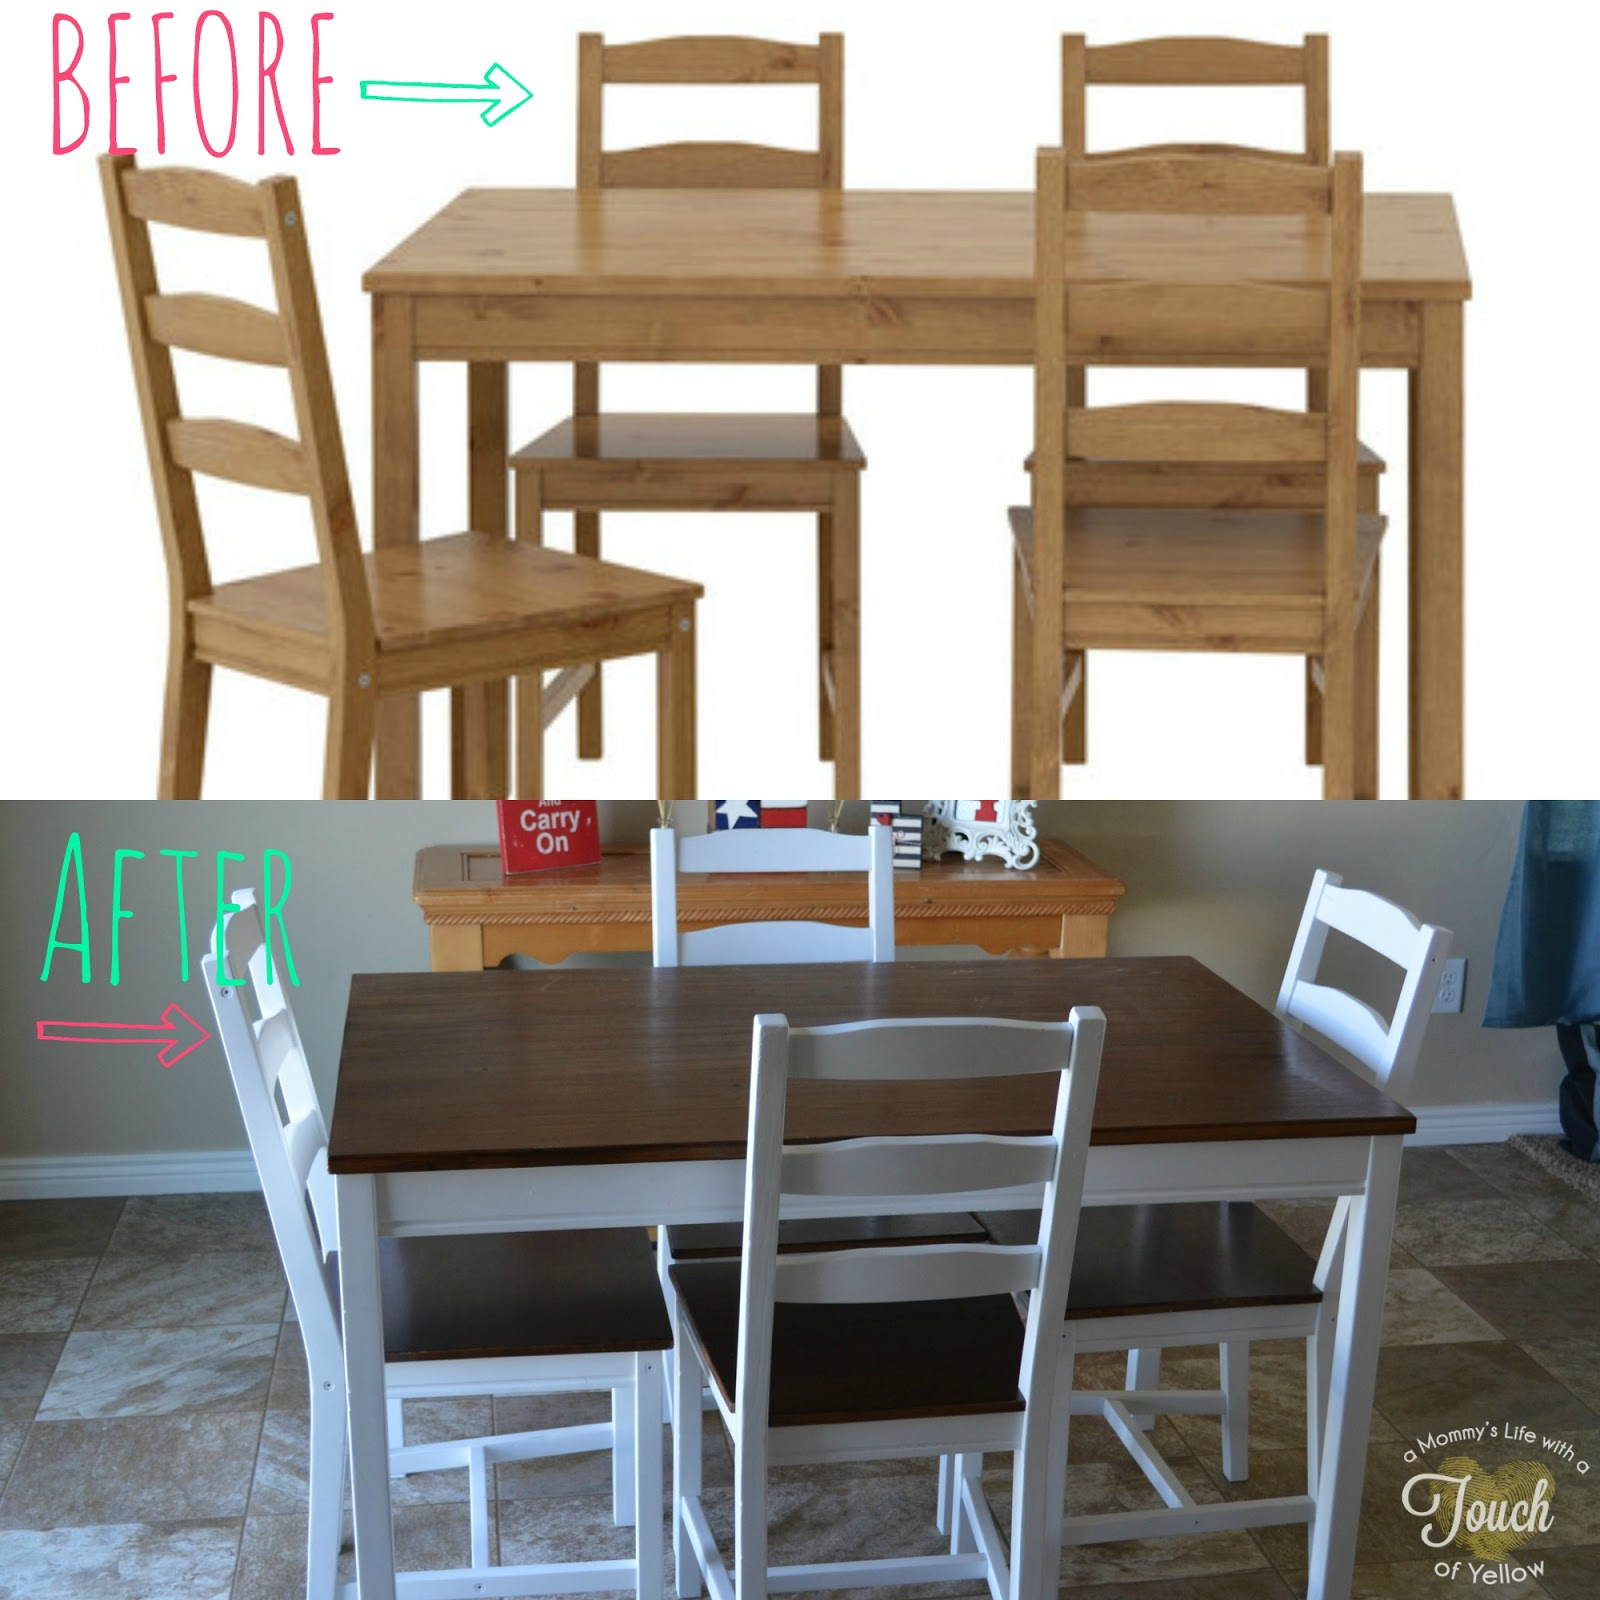 Ikea Kitchen Tables: A Mommy's Life...with A Touch Of YELLOW: Ikea Kitchen